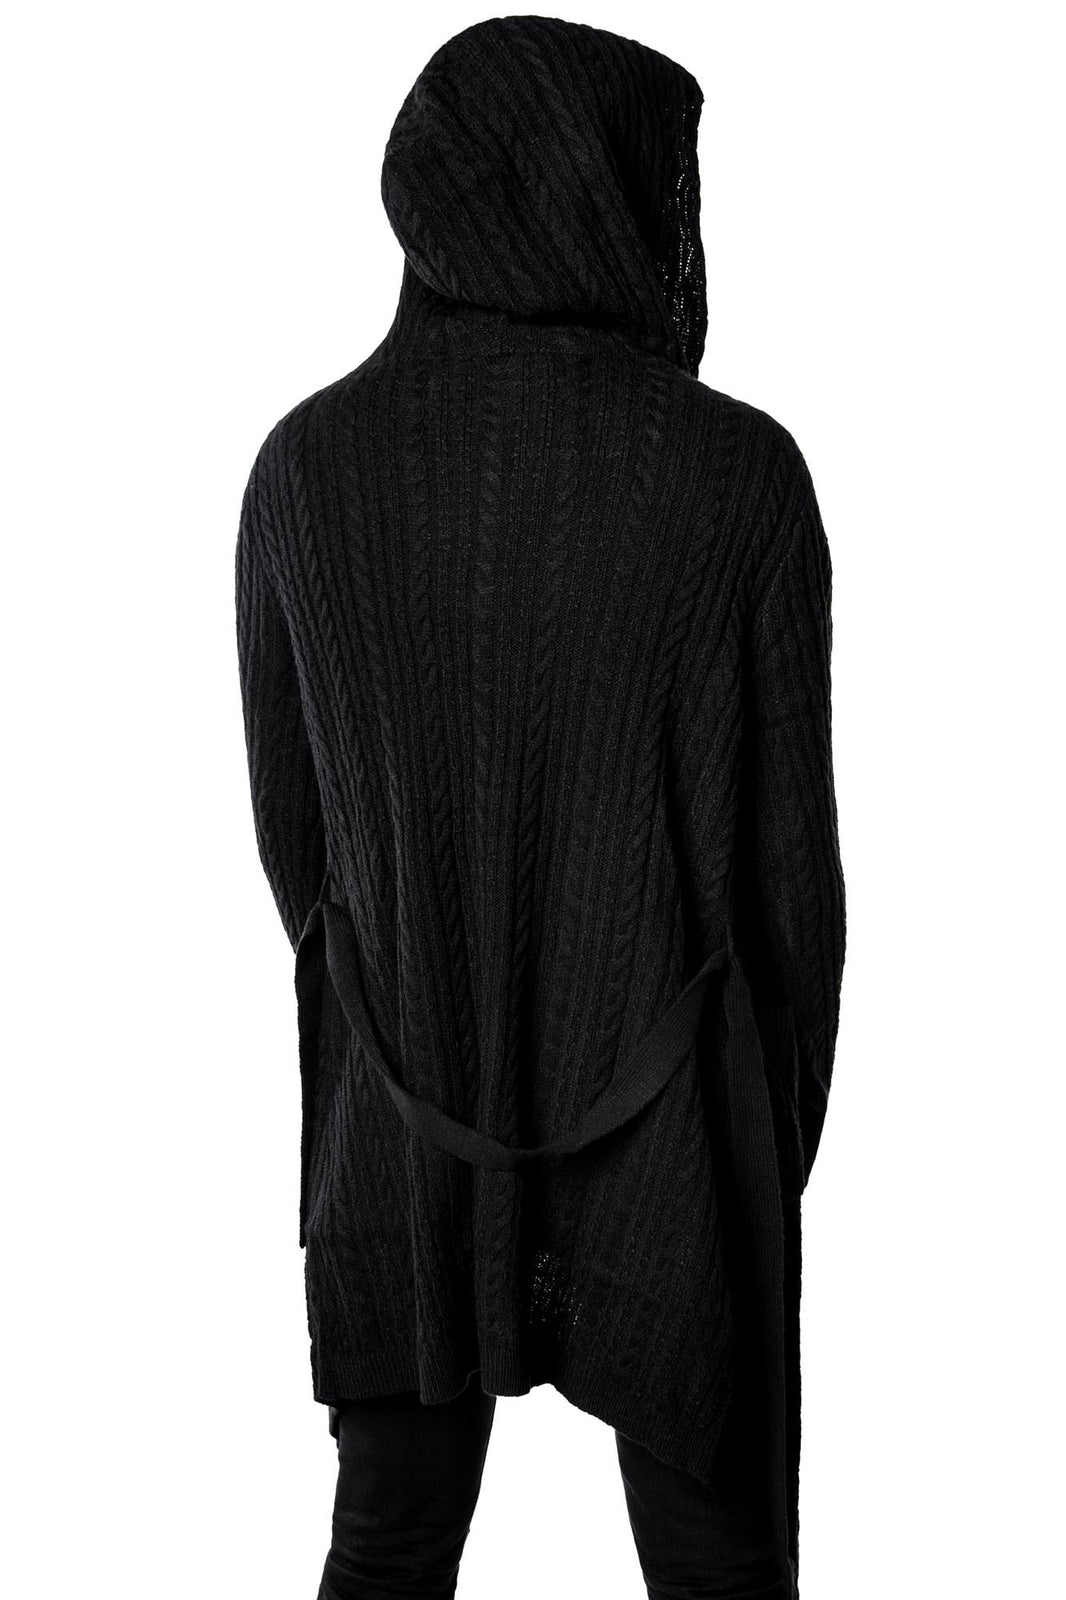 Crypt Never Die Knit Cardigan [B]